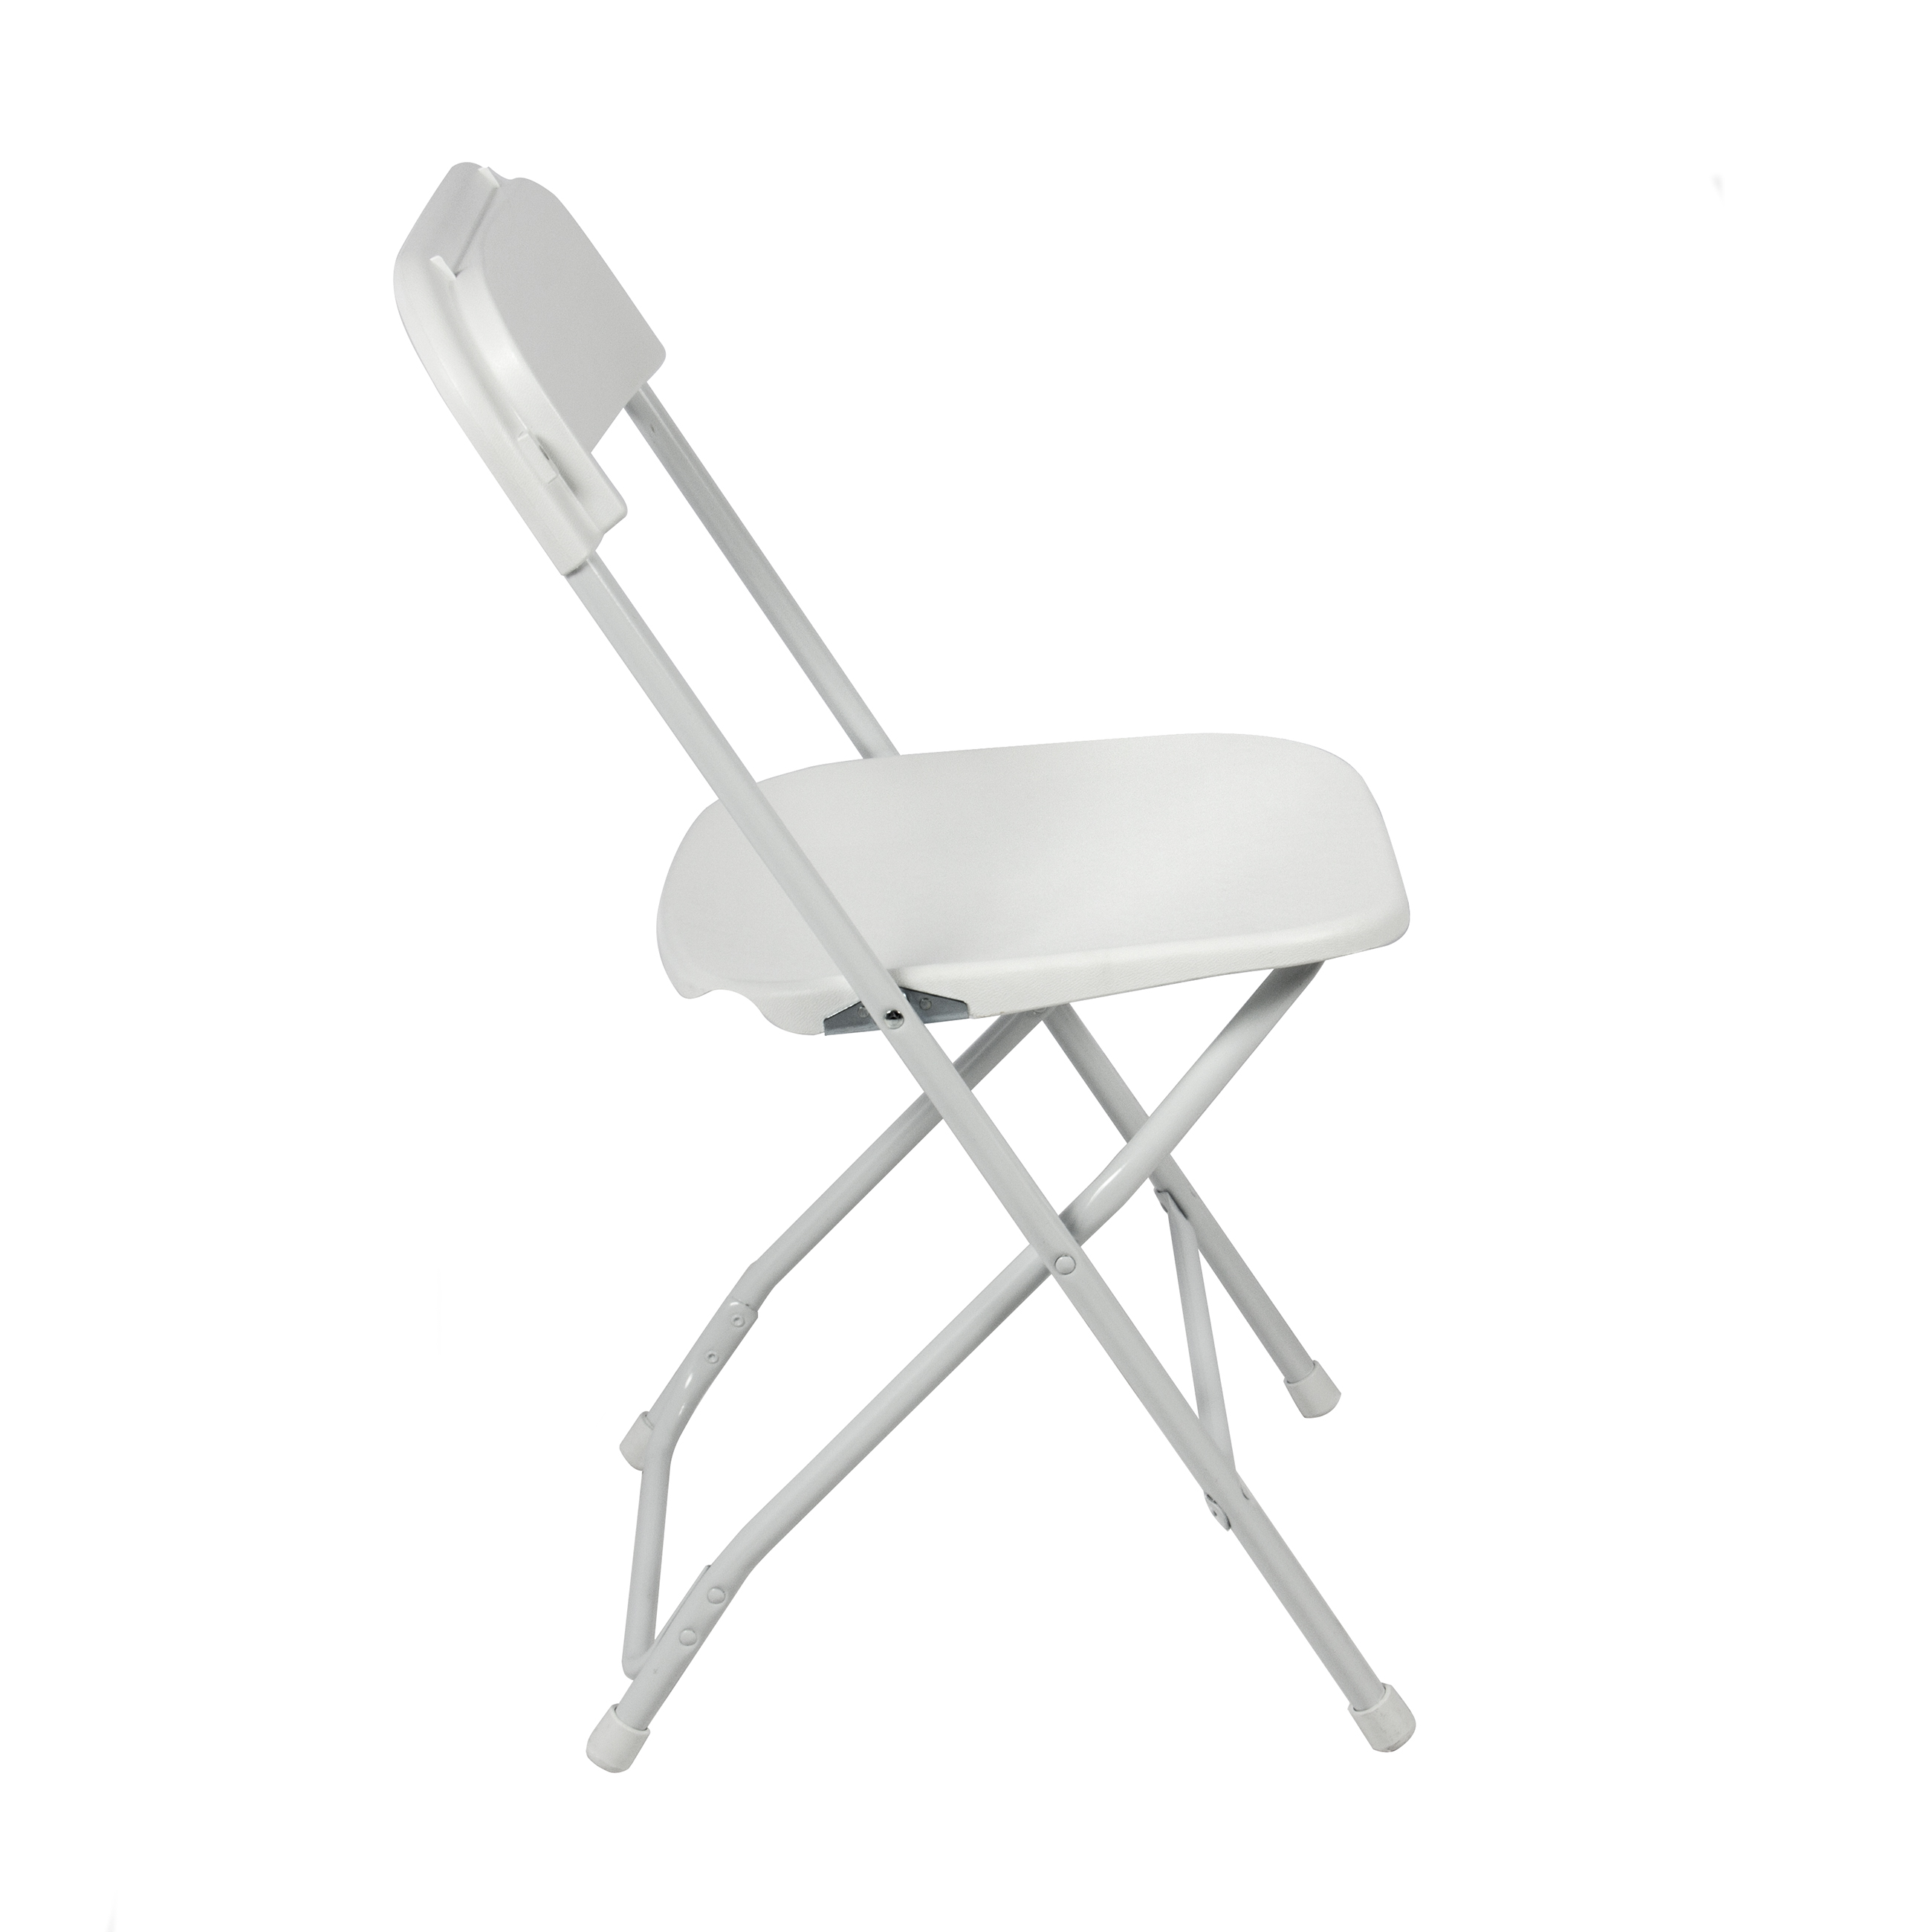 white plastic chairs coleman quad chair best choice products set of 5 indoor outdoor portable stackable lightweight folding for events parties walmart com